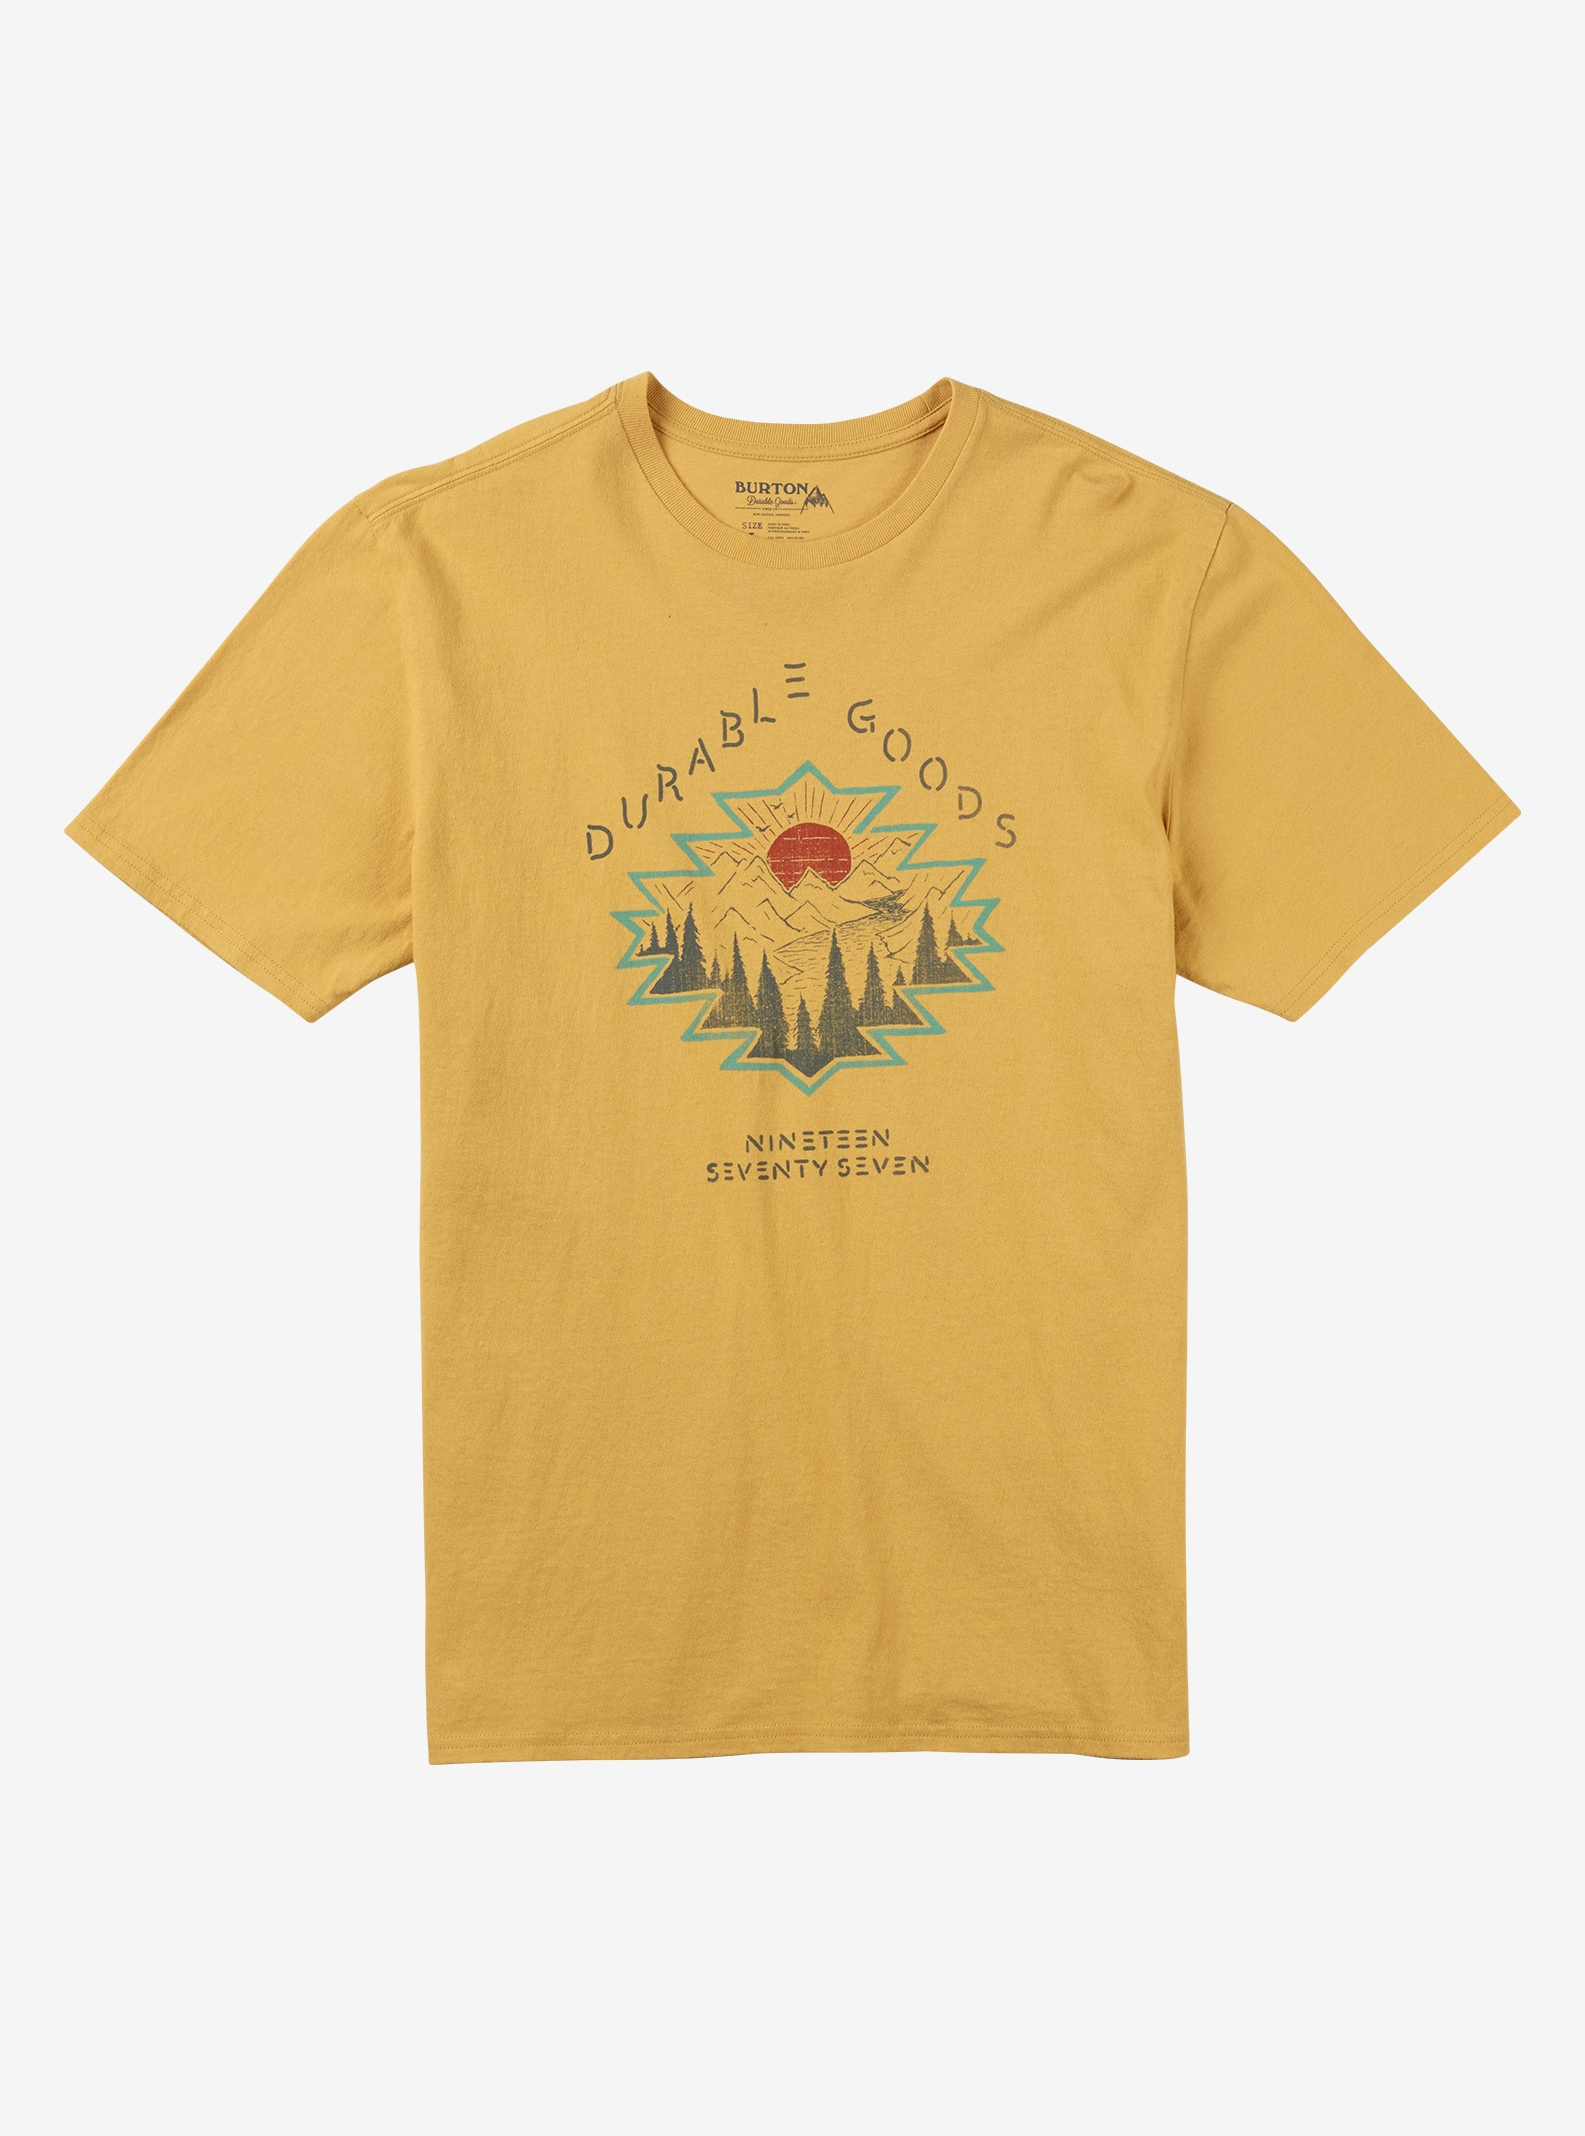 Burton Eldorado Short Sleeve T Shirt shown in Sunrise